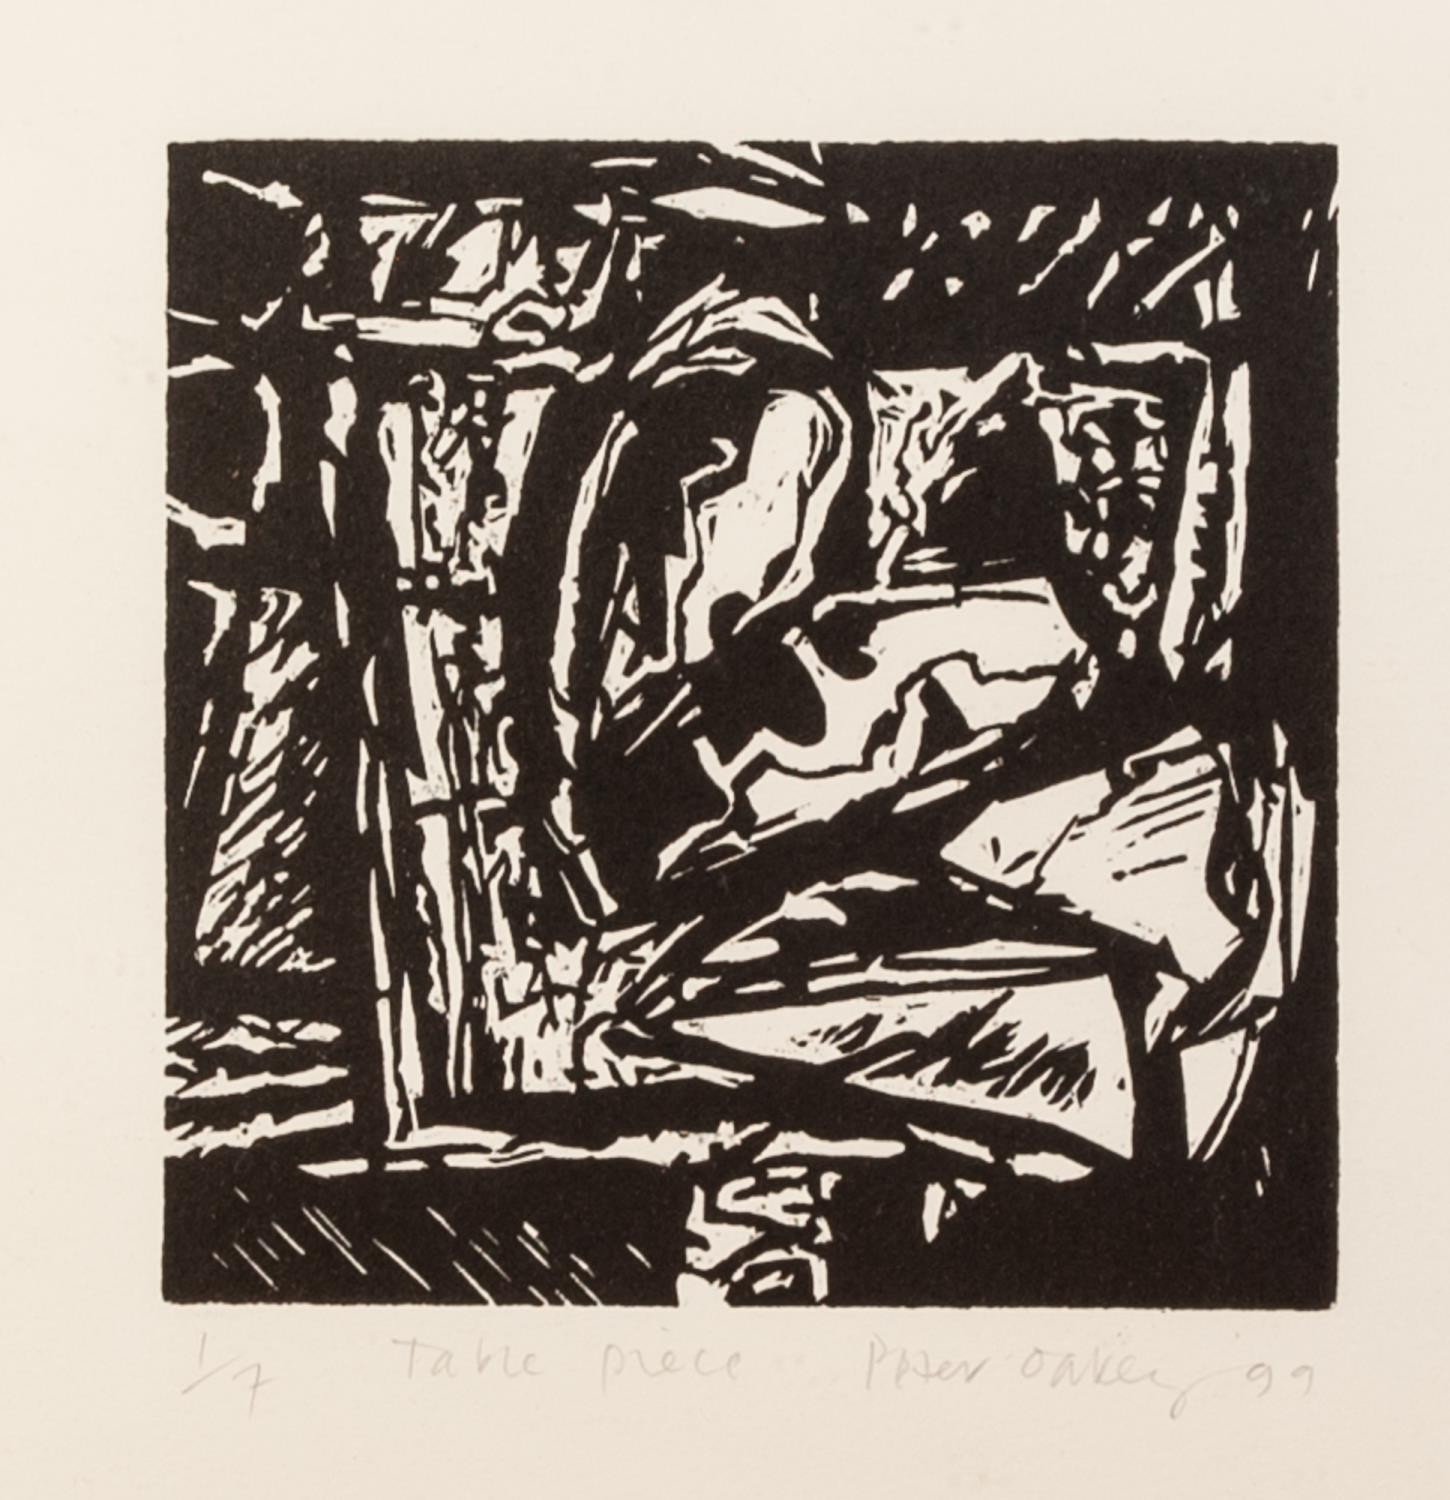 PETER OAKLEY (1935-2007) SEVEN ARTIST SIGNED LIMITED EDITION BLACK AND WHITE WOODCUTS OF SIMILAR - Image 4 of 8